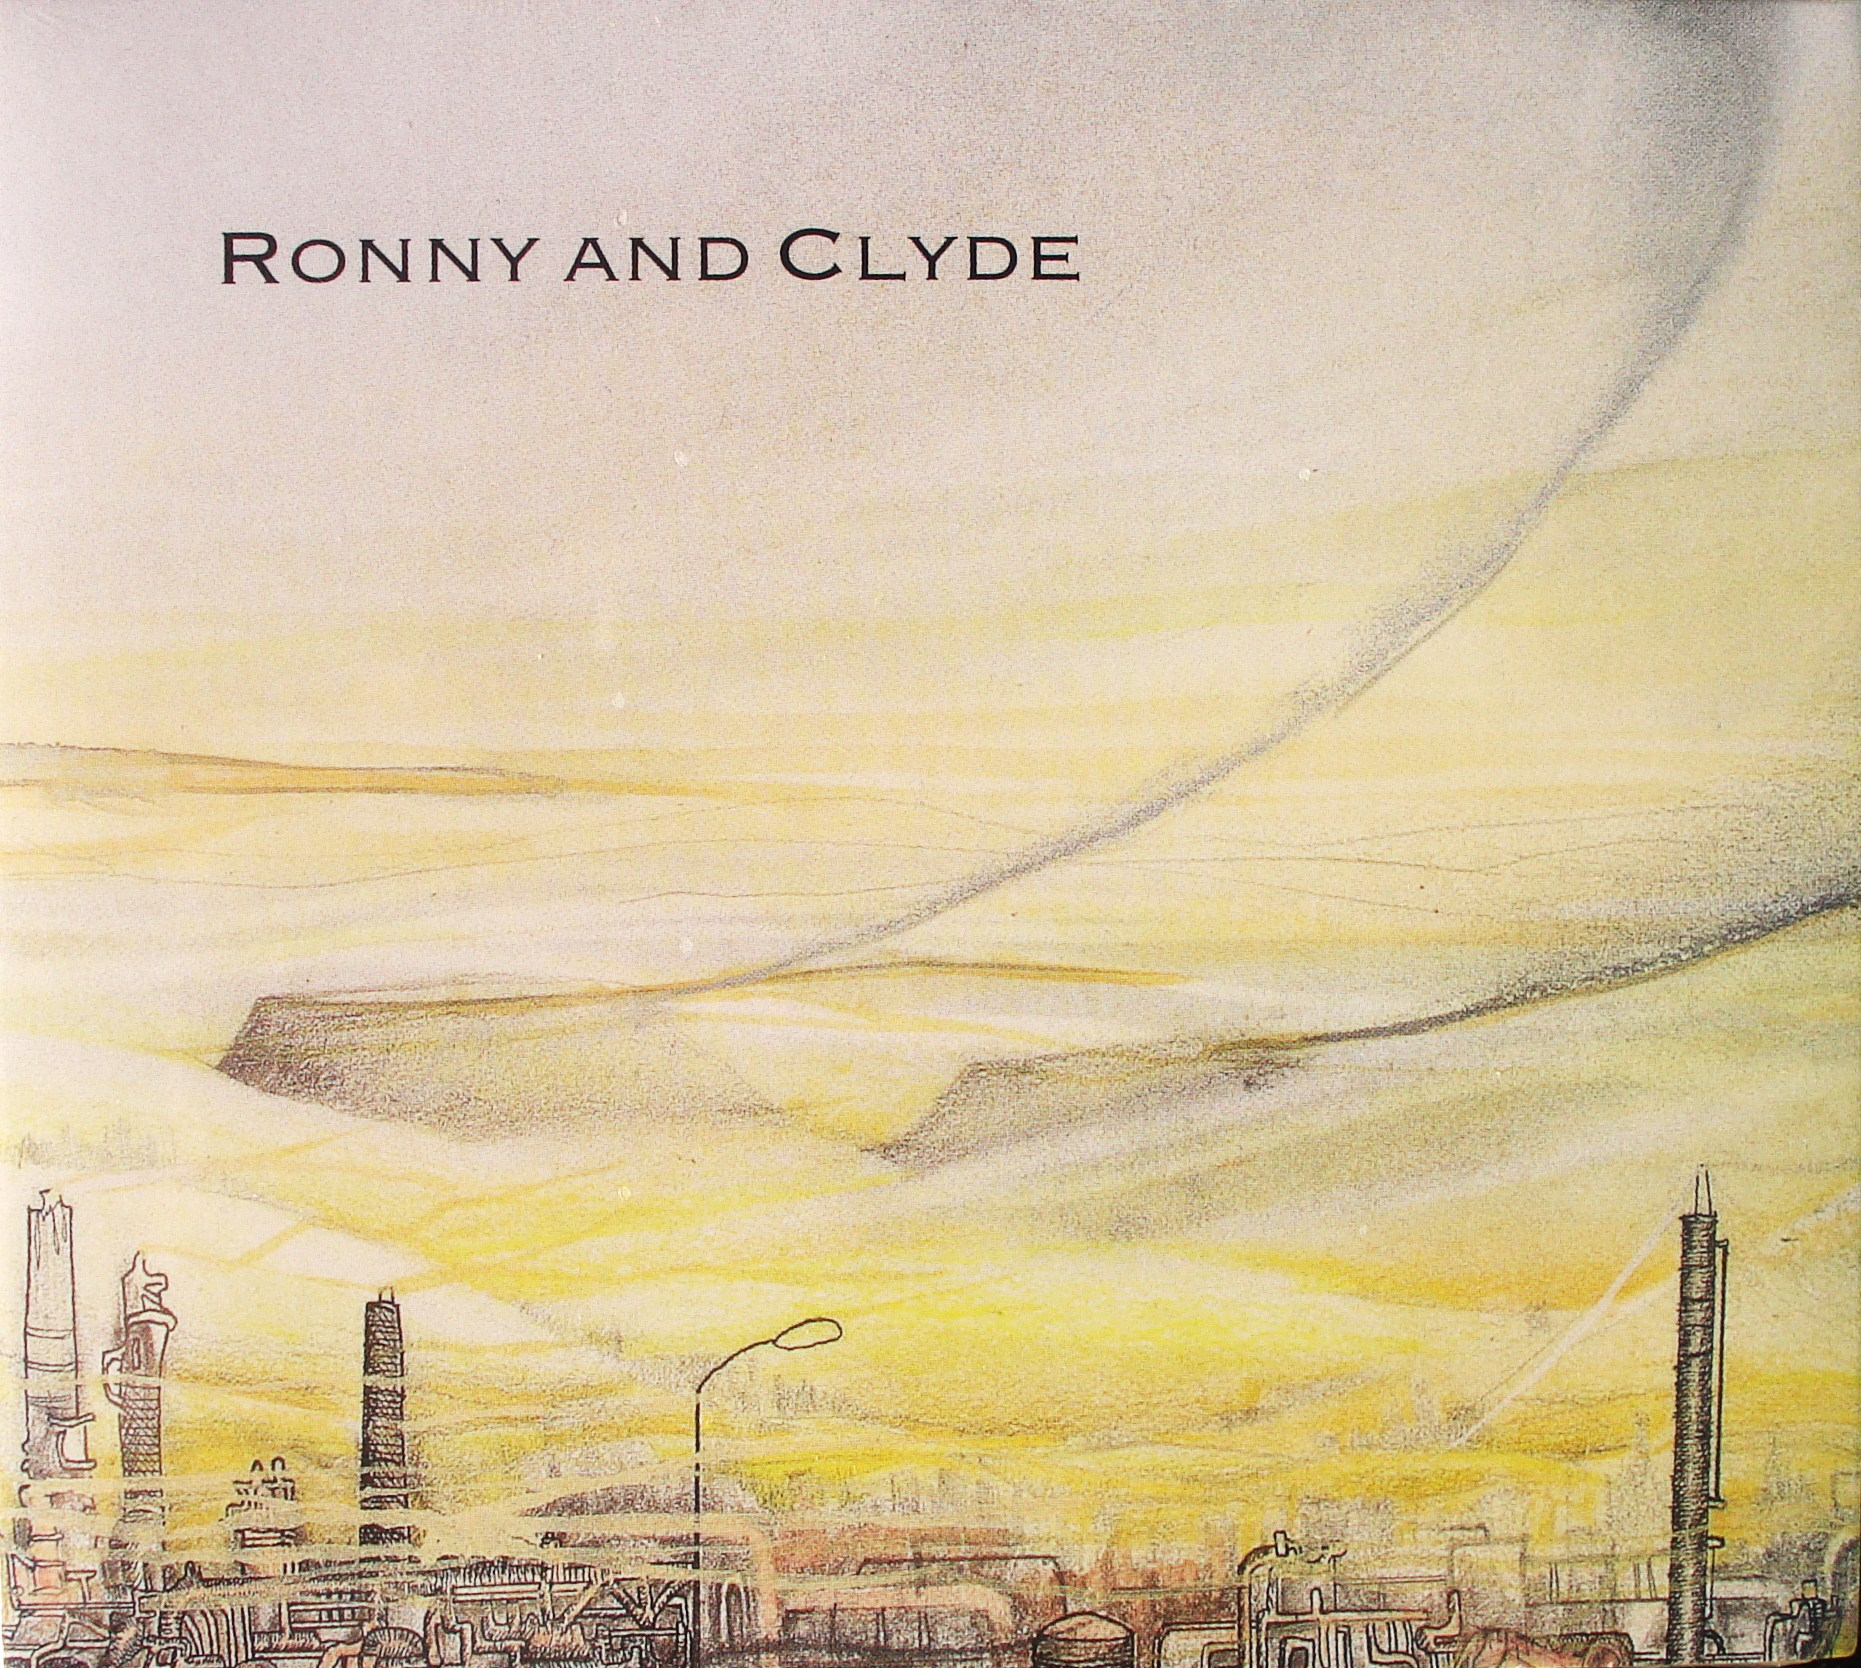 Ronny and Clyde